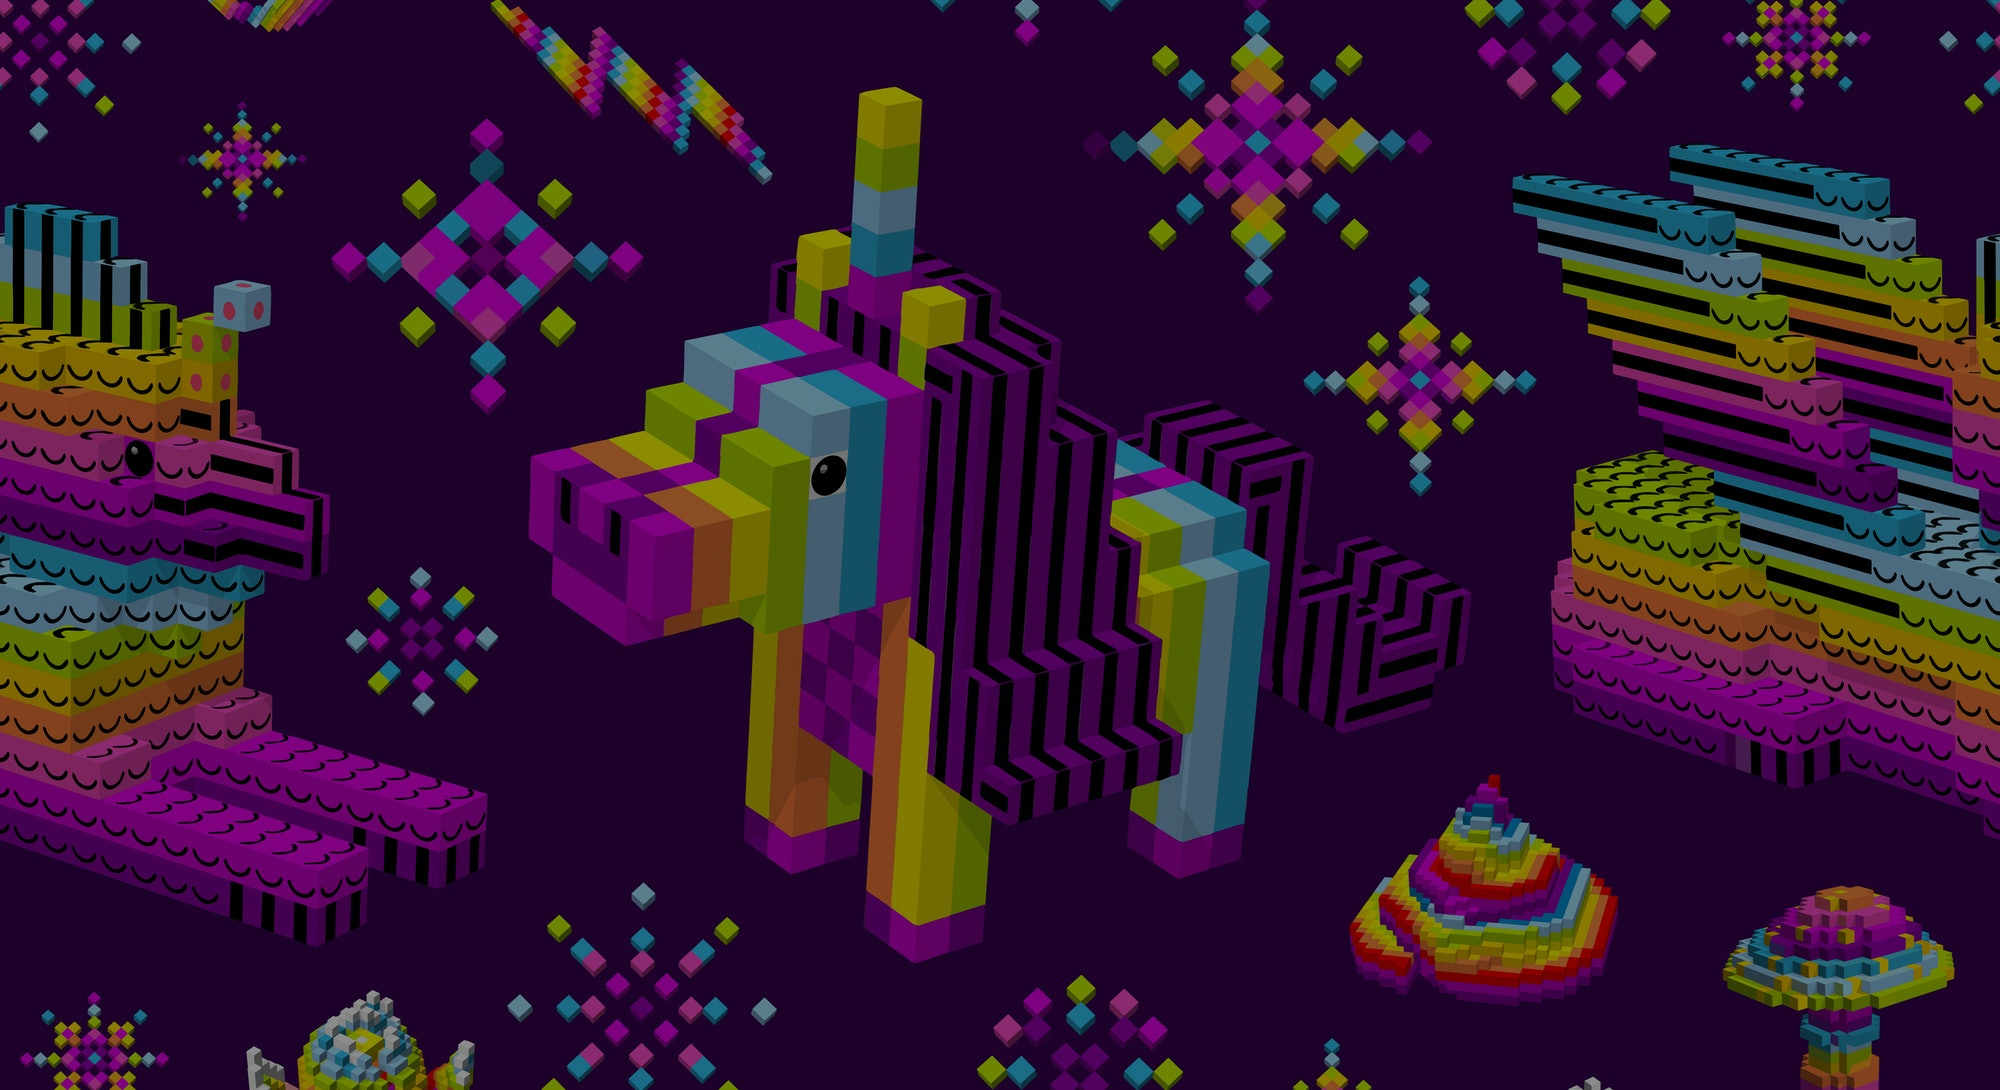 Unicorn shit,space sphinx rainbow,stars,Saturn.Computer characters,3D,cubes,pixel art,game style,digital,purple seamless pattern for wallpaper,textiles.Vector